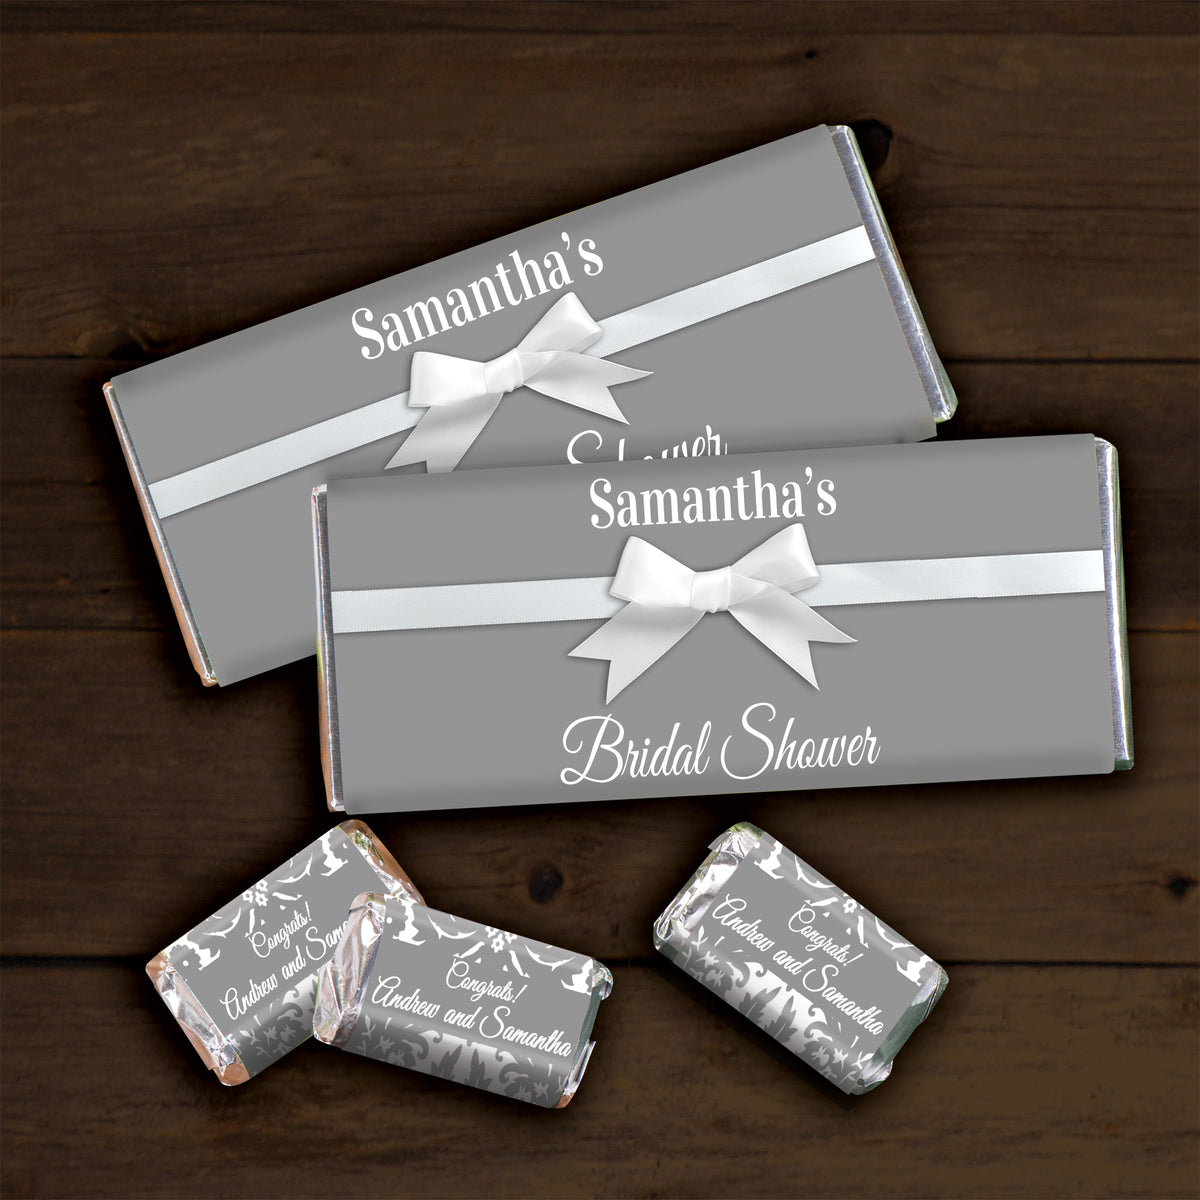 Hershey's Chocolate Lights, Camera, Party! Personalized Candy Bars